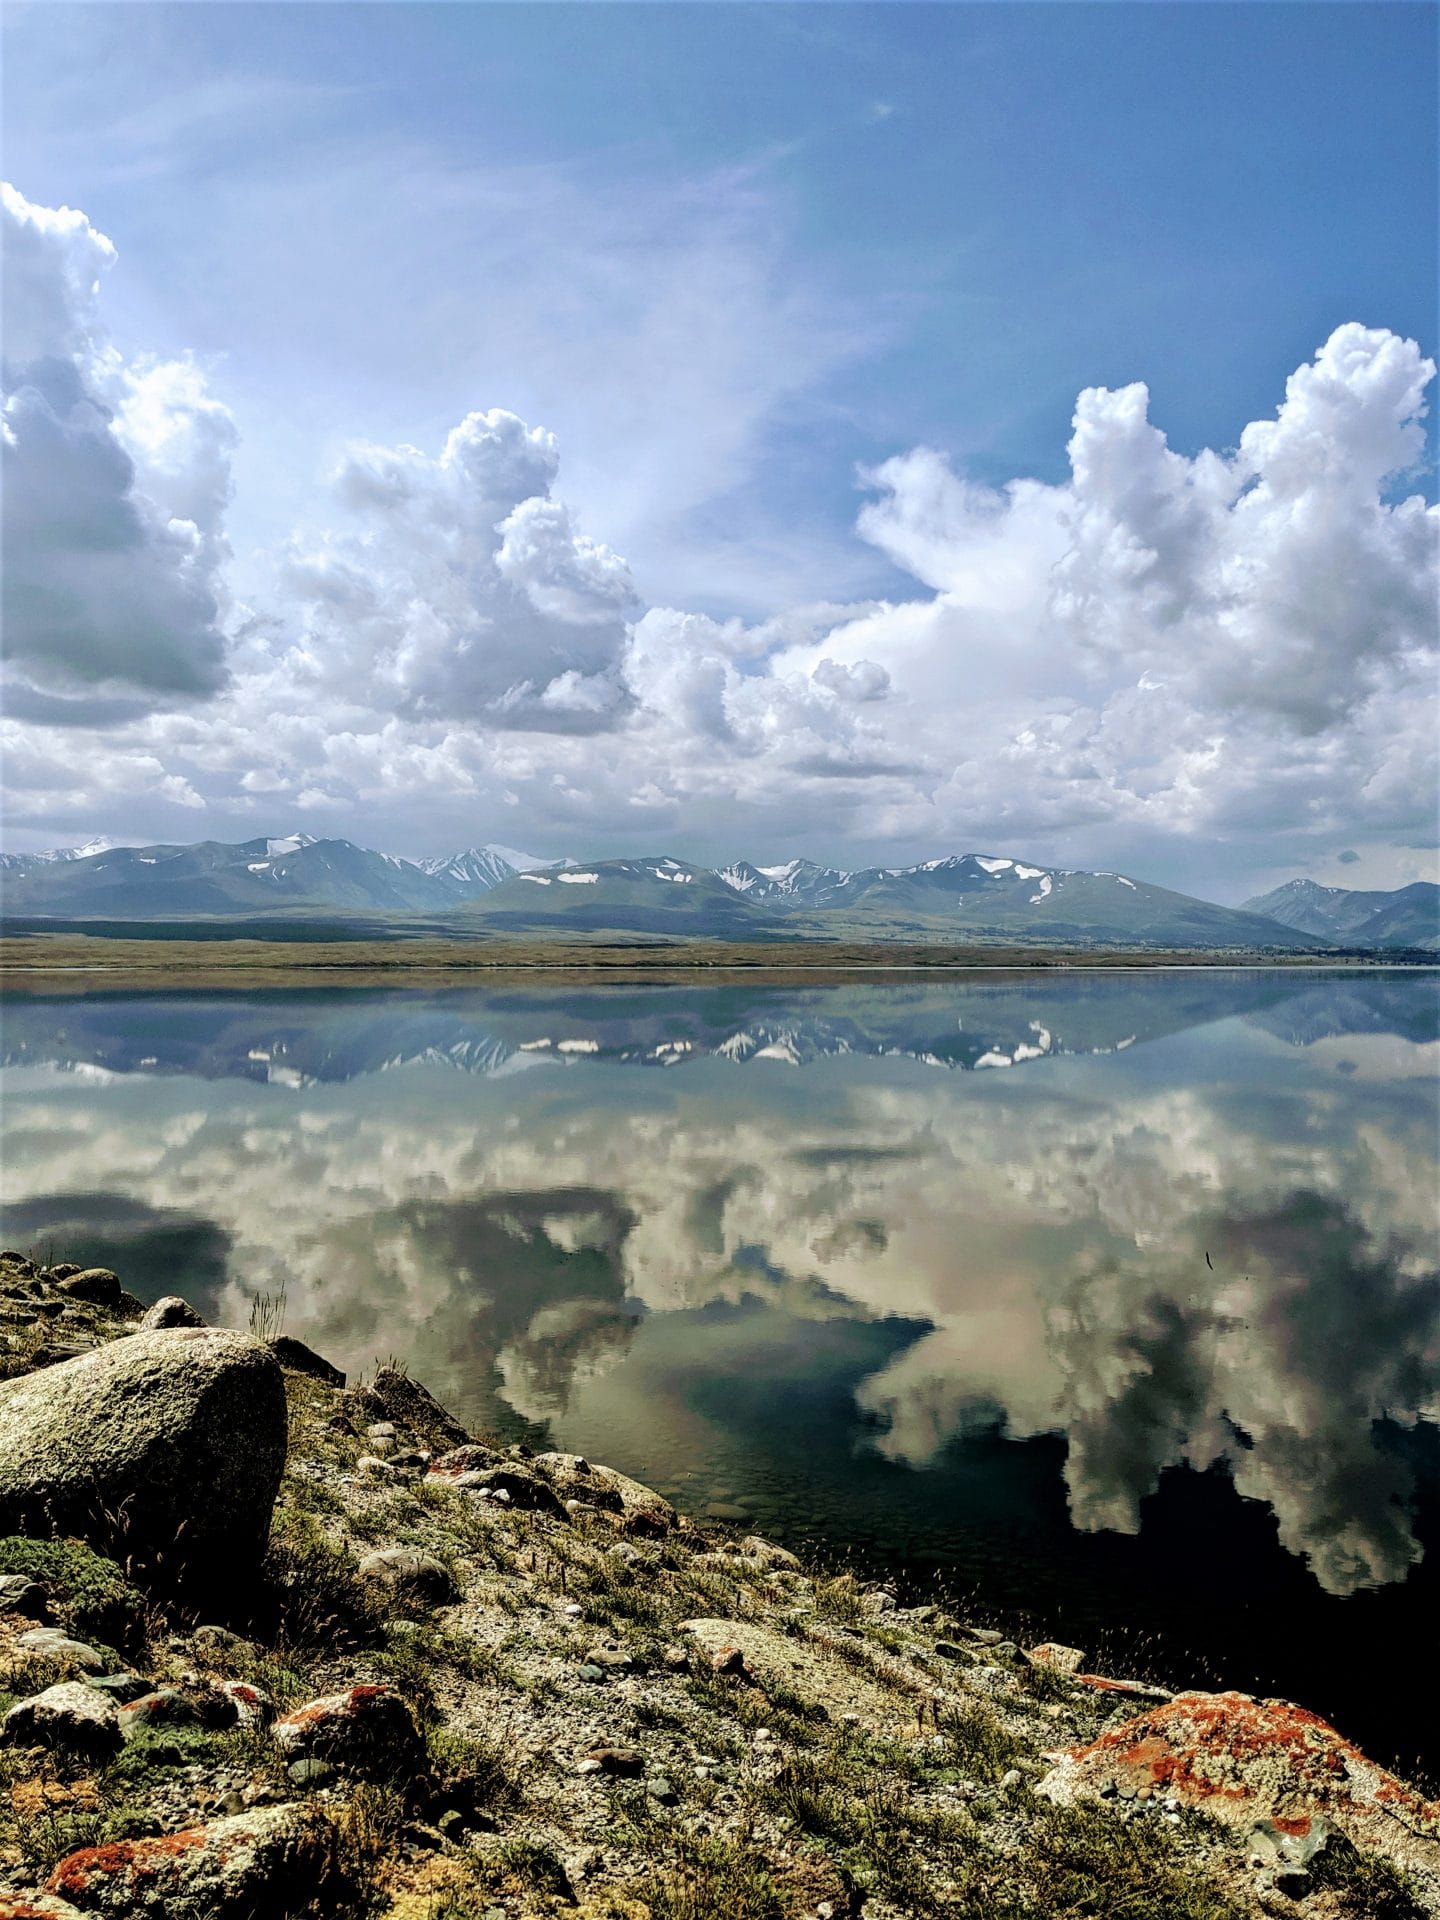 The Altai Mountains reflect off of Khurgan Nuur, a lake formed after the recession of glaciers thousands of years ago left a huge hollow that then filled with glacial melt.